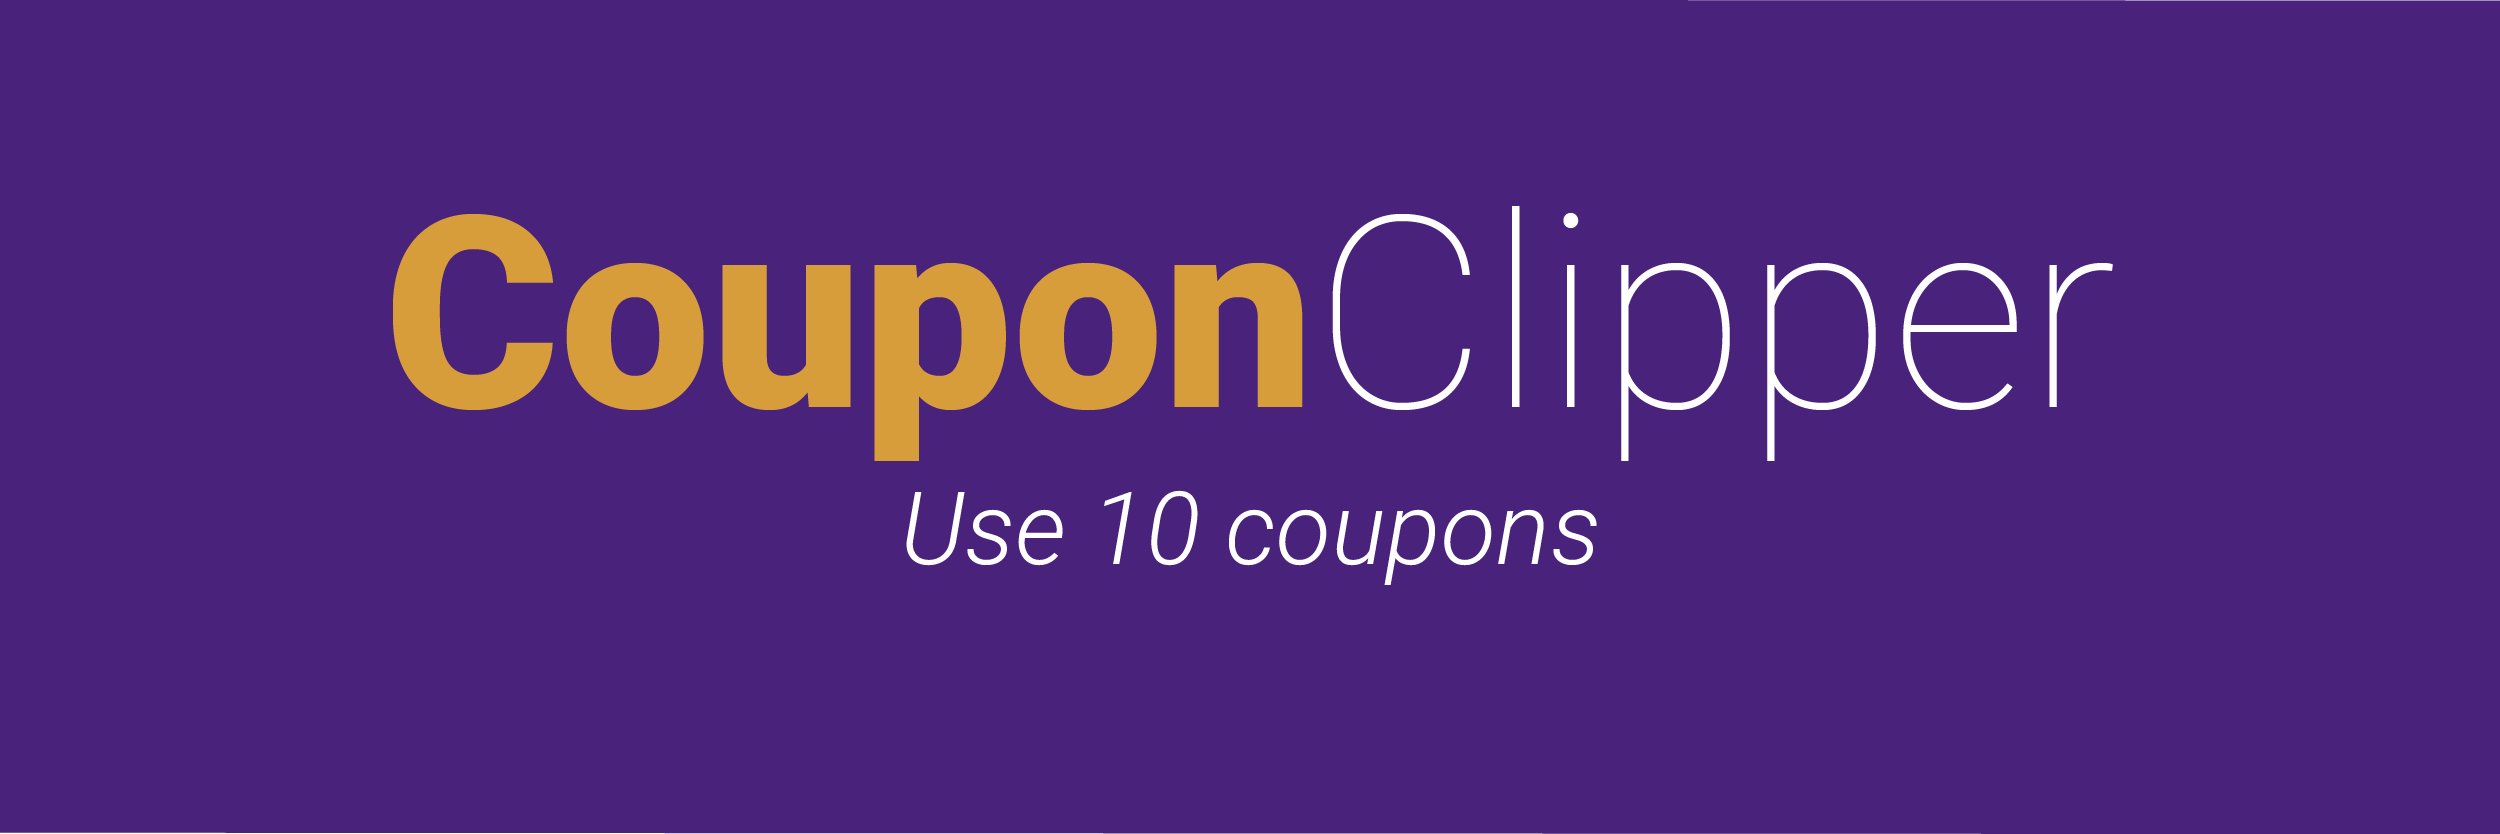 Coupon Clipper-01